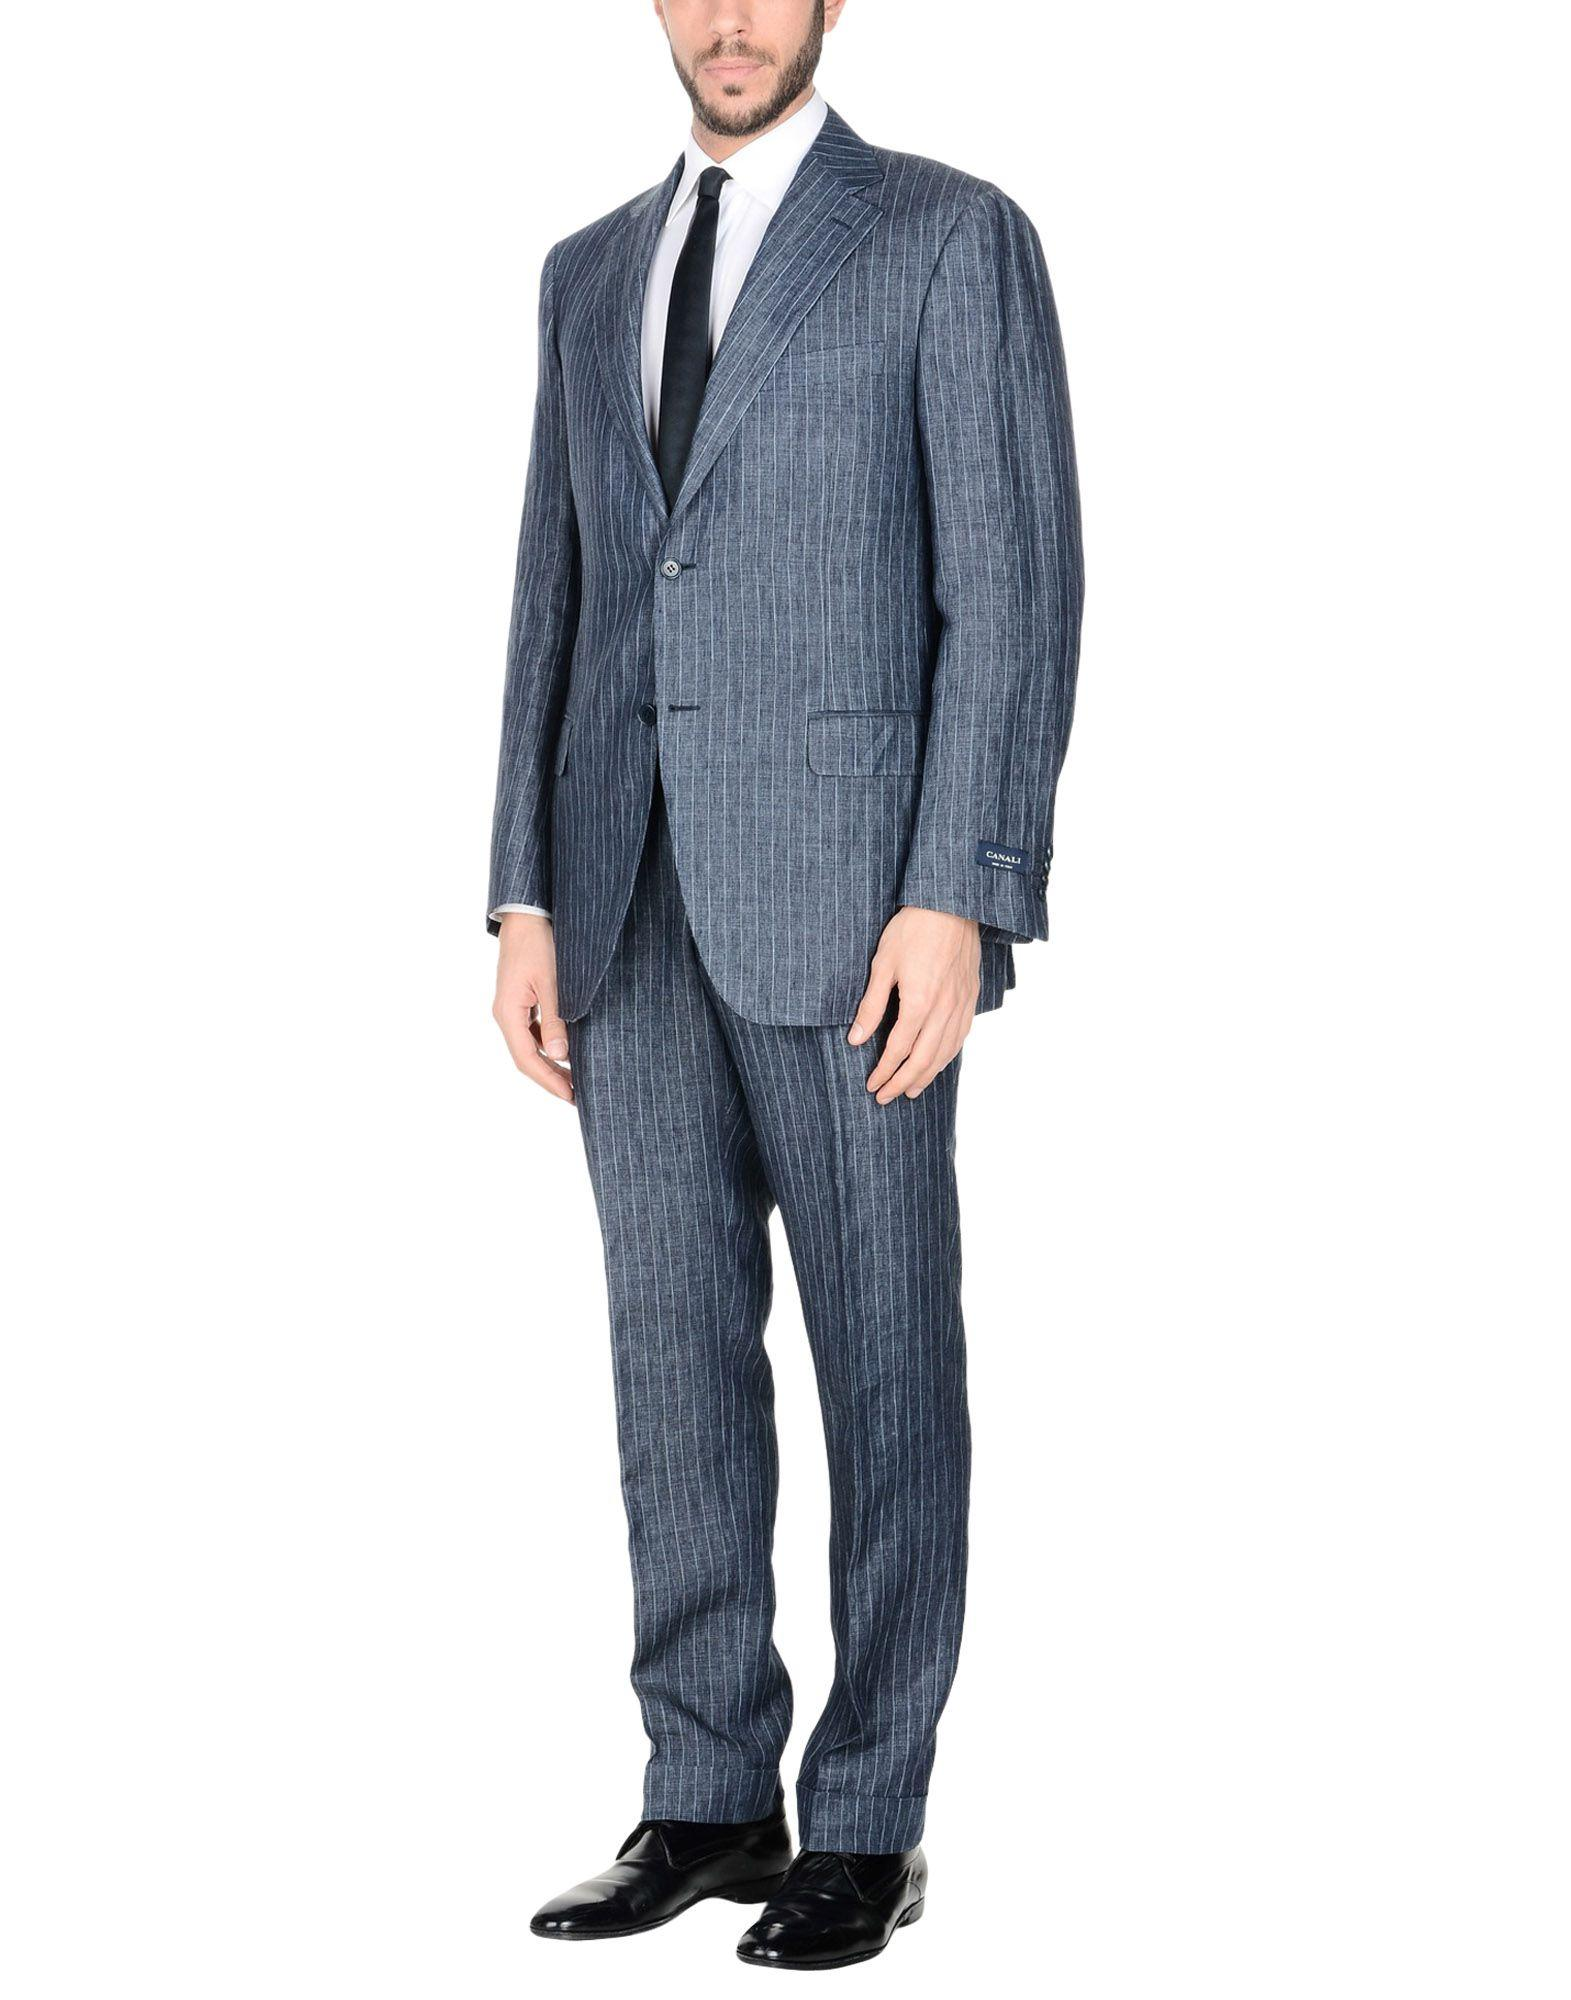 Canali Suits In Slate Blue